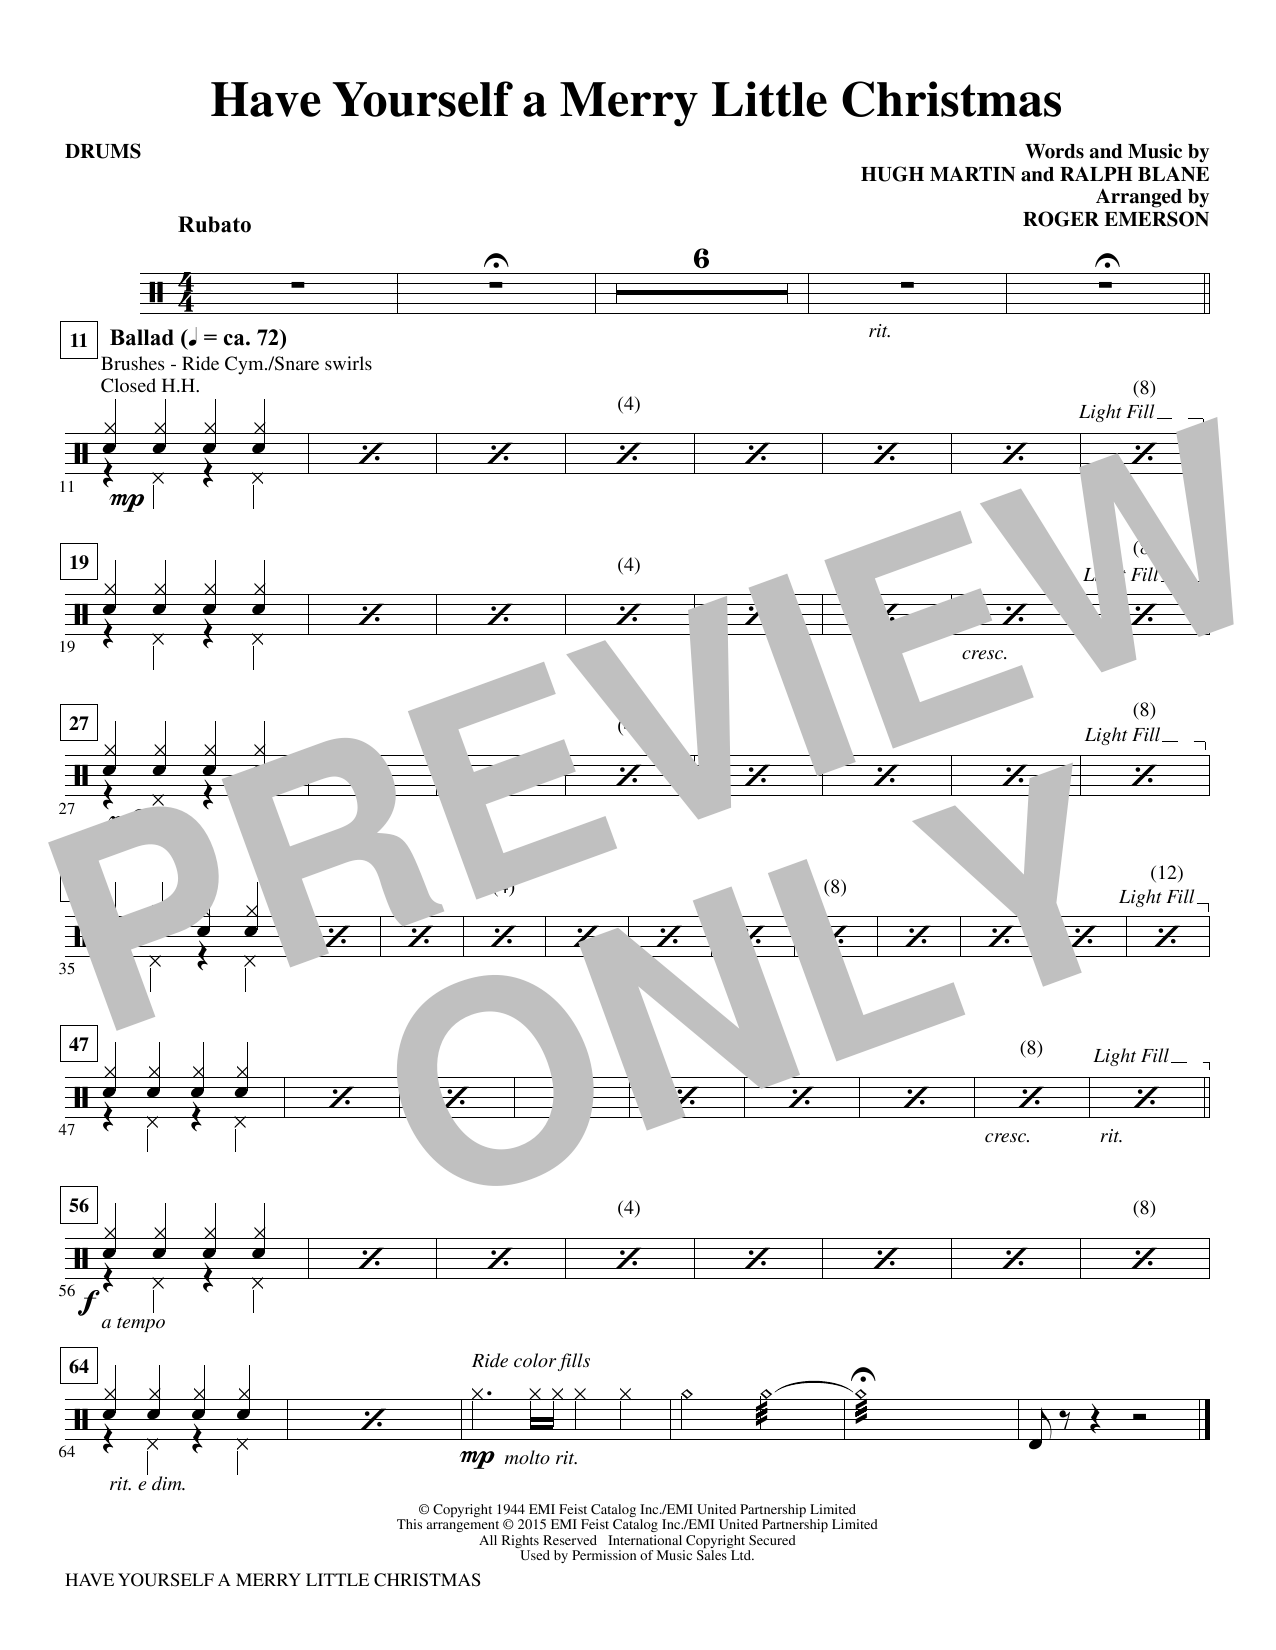 Have Yourself a Merry Little Christmas - Drums Sheet Music